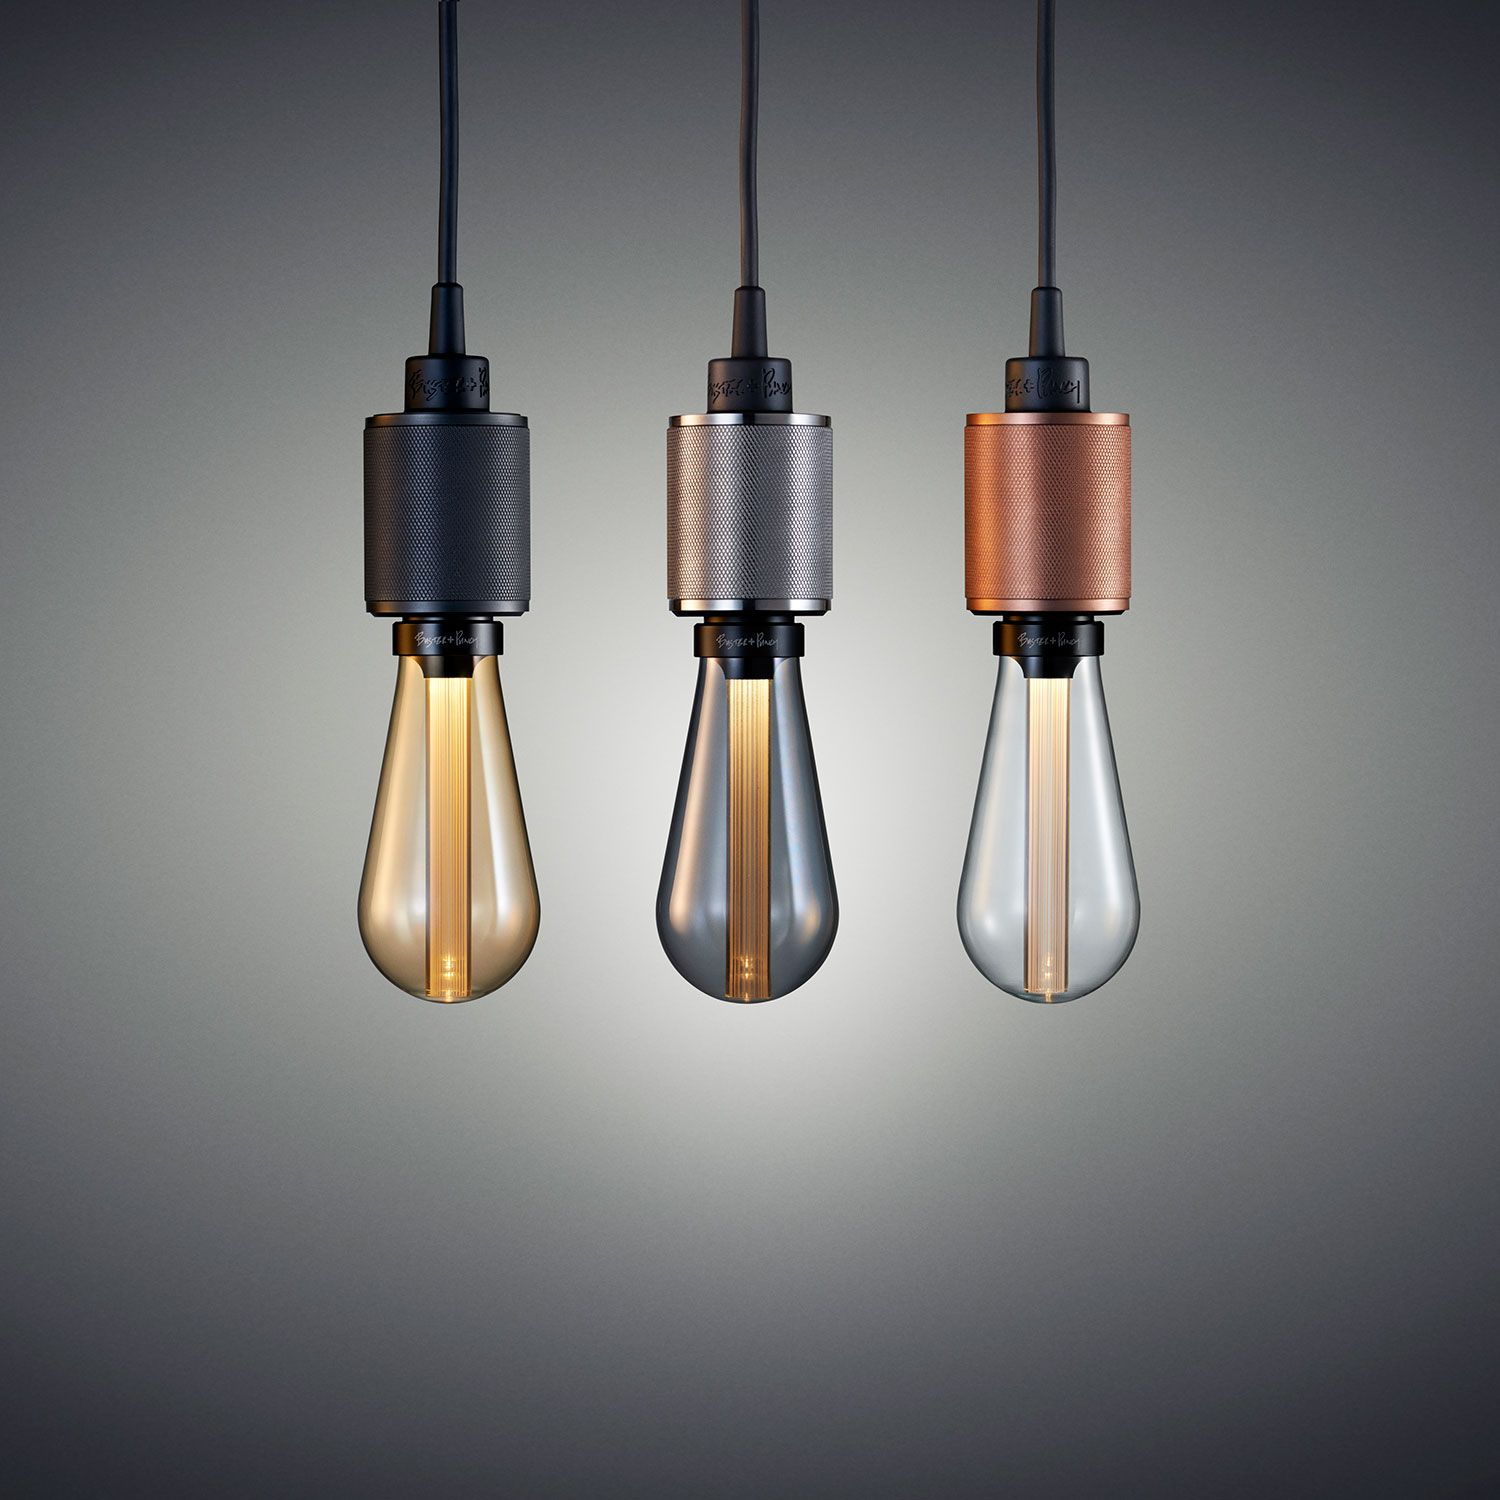 Buster + Punch Unveils the World's First Designer LED Bulb ...